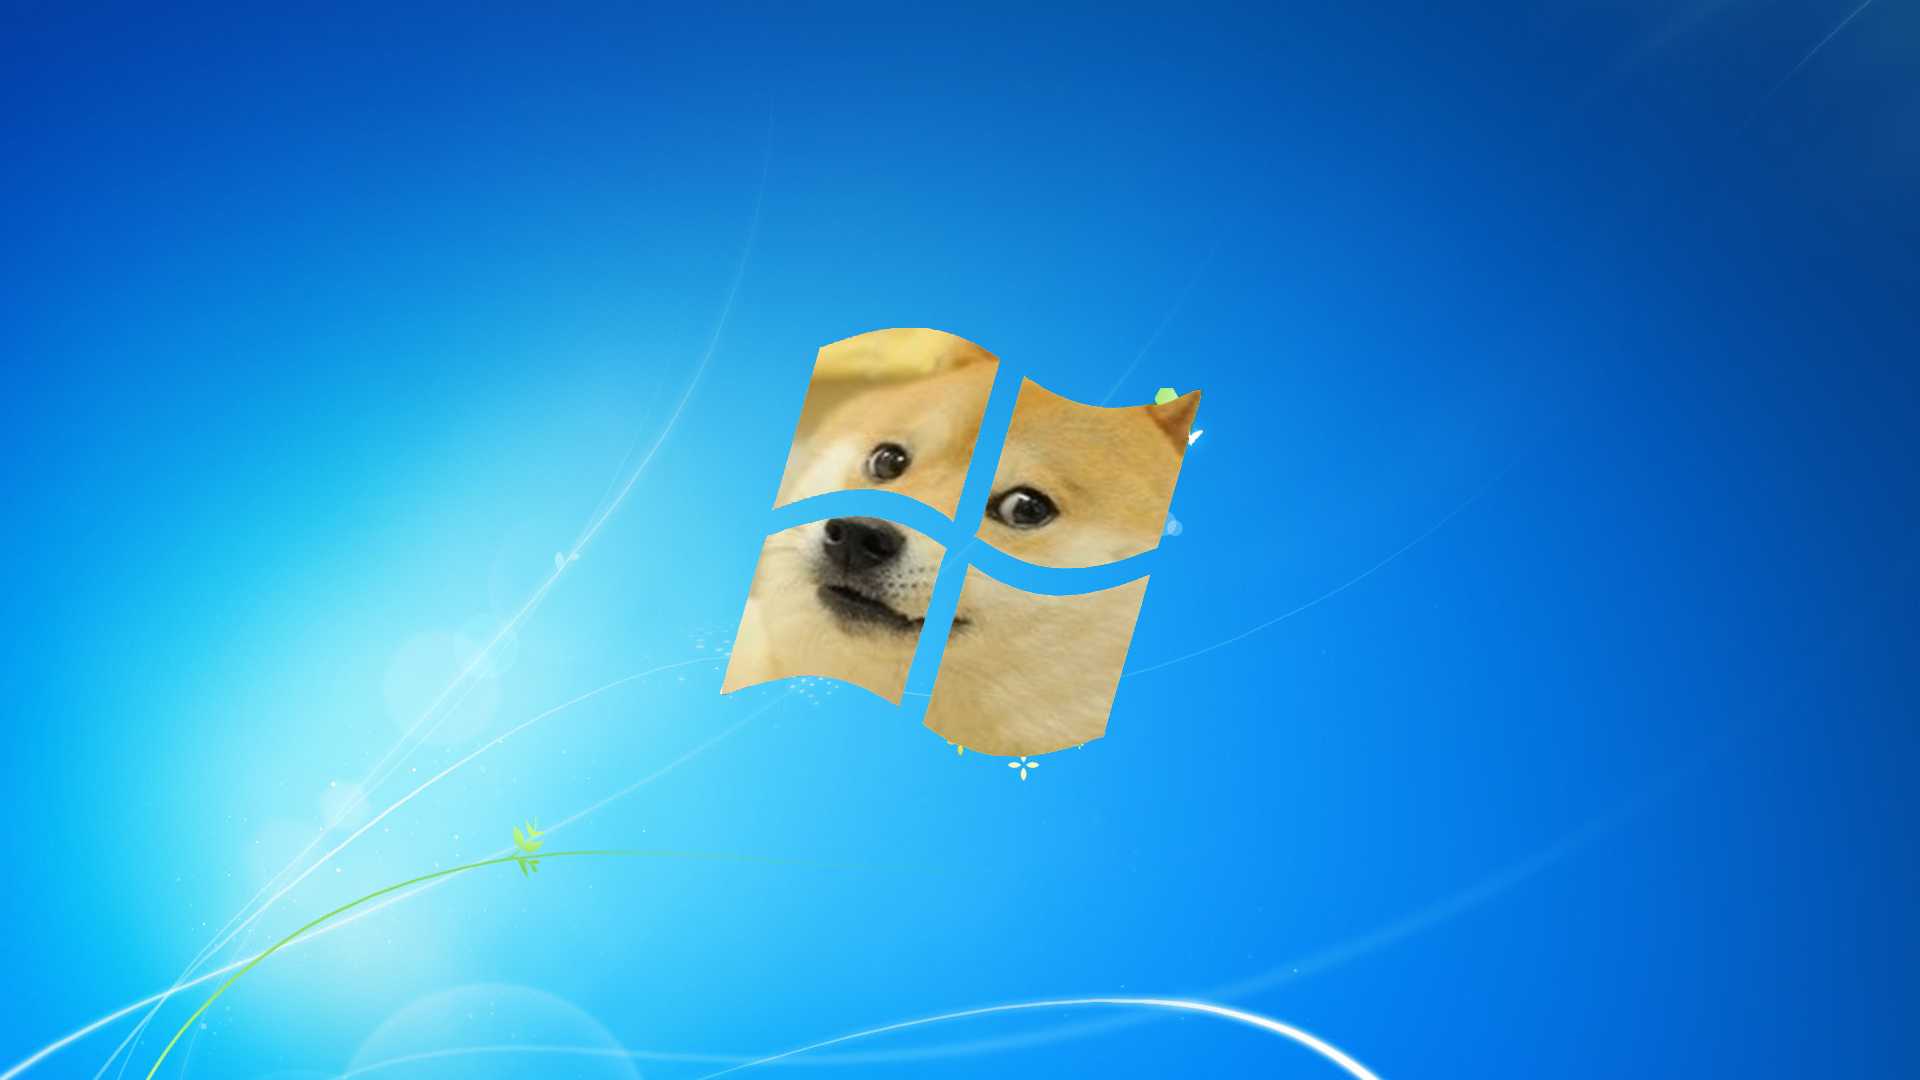 doge   Doge Wallpaper 1920x1080 113966 1920x1080